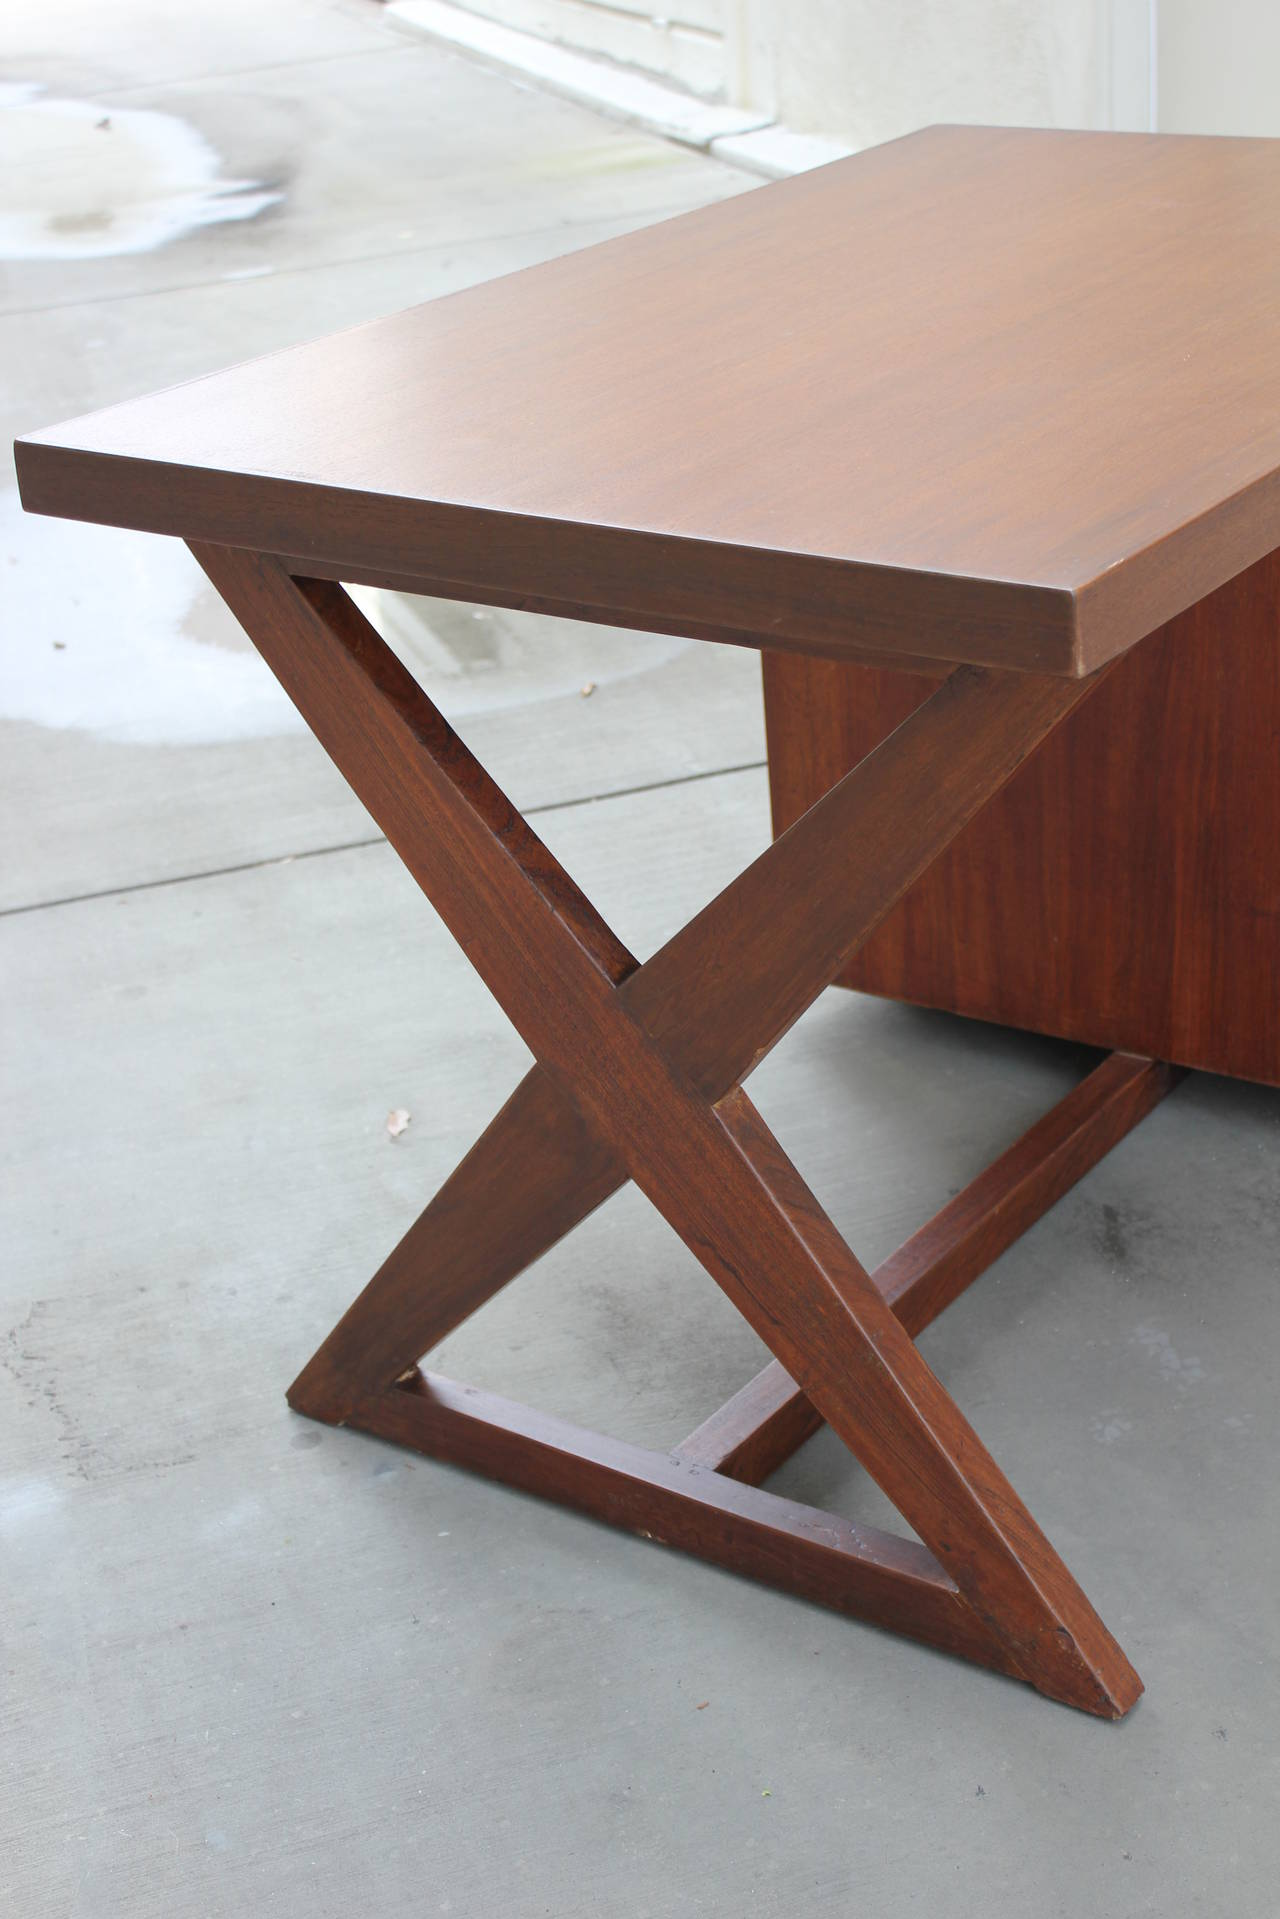 Indian Pierre Jeanneret Bureau of Administration Desk For Sale